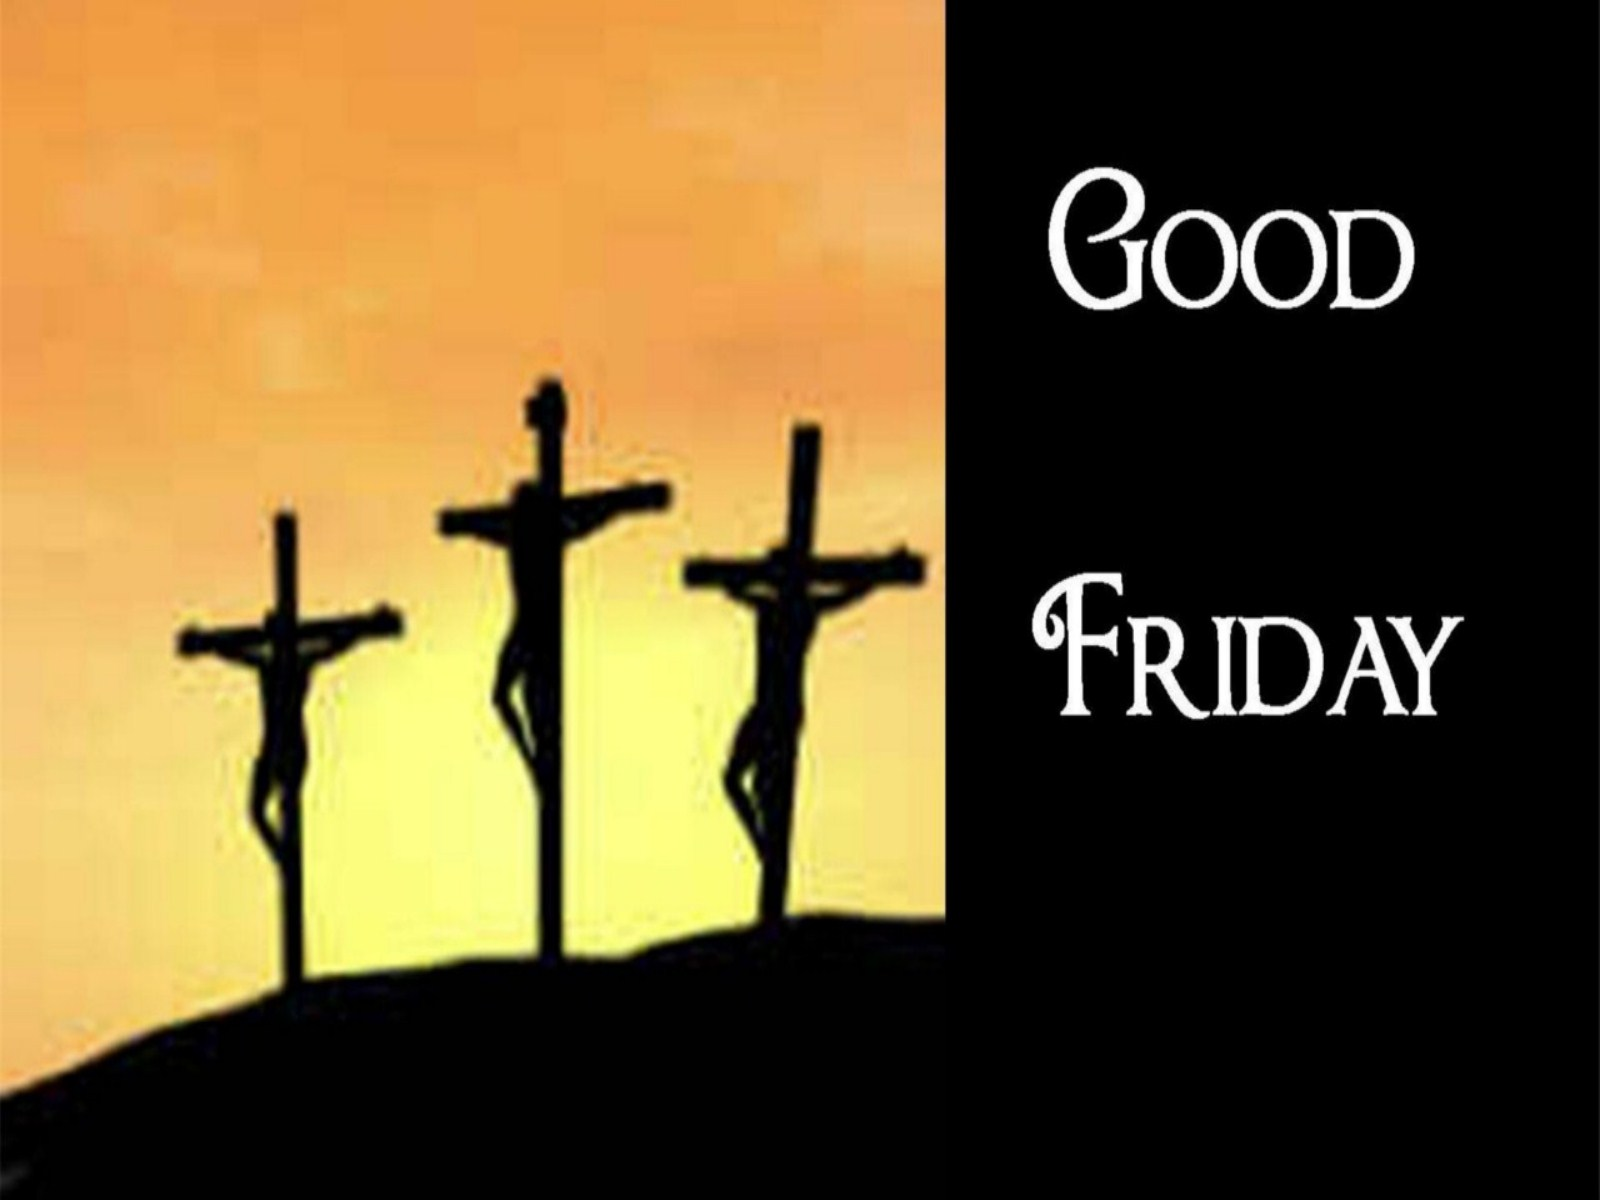 2016 clipart good friday. Wallpapers group happy quotes